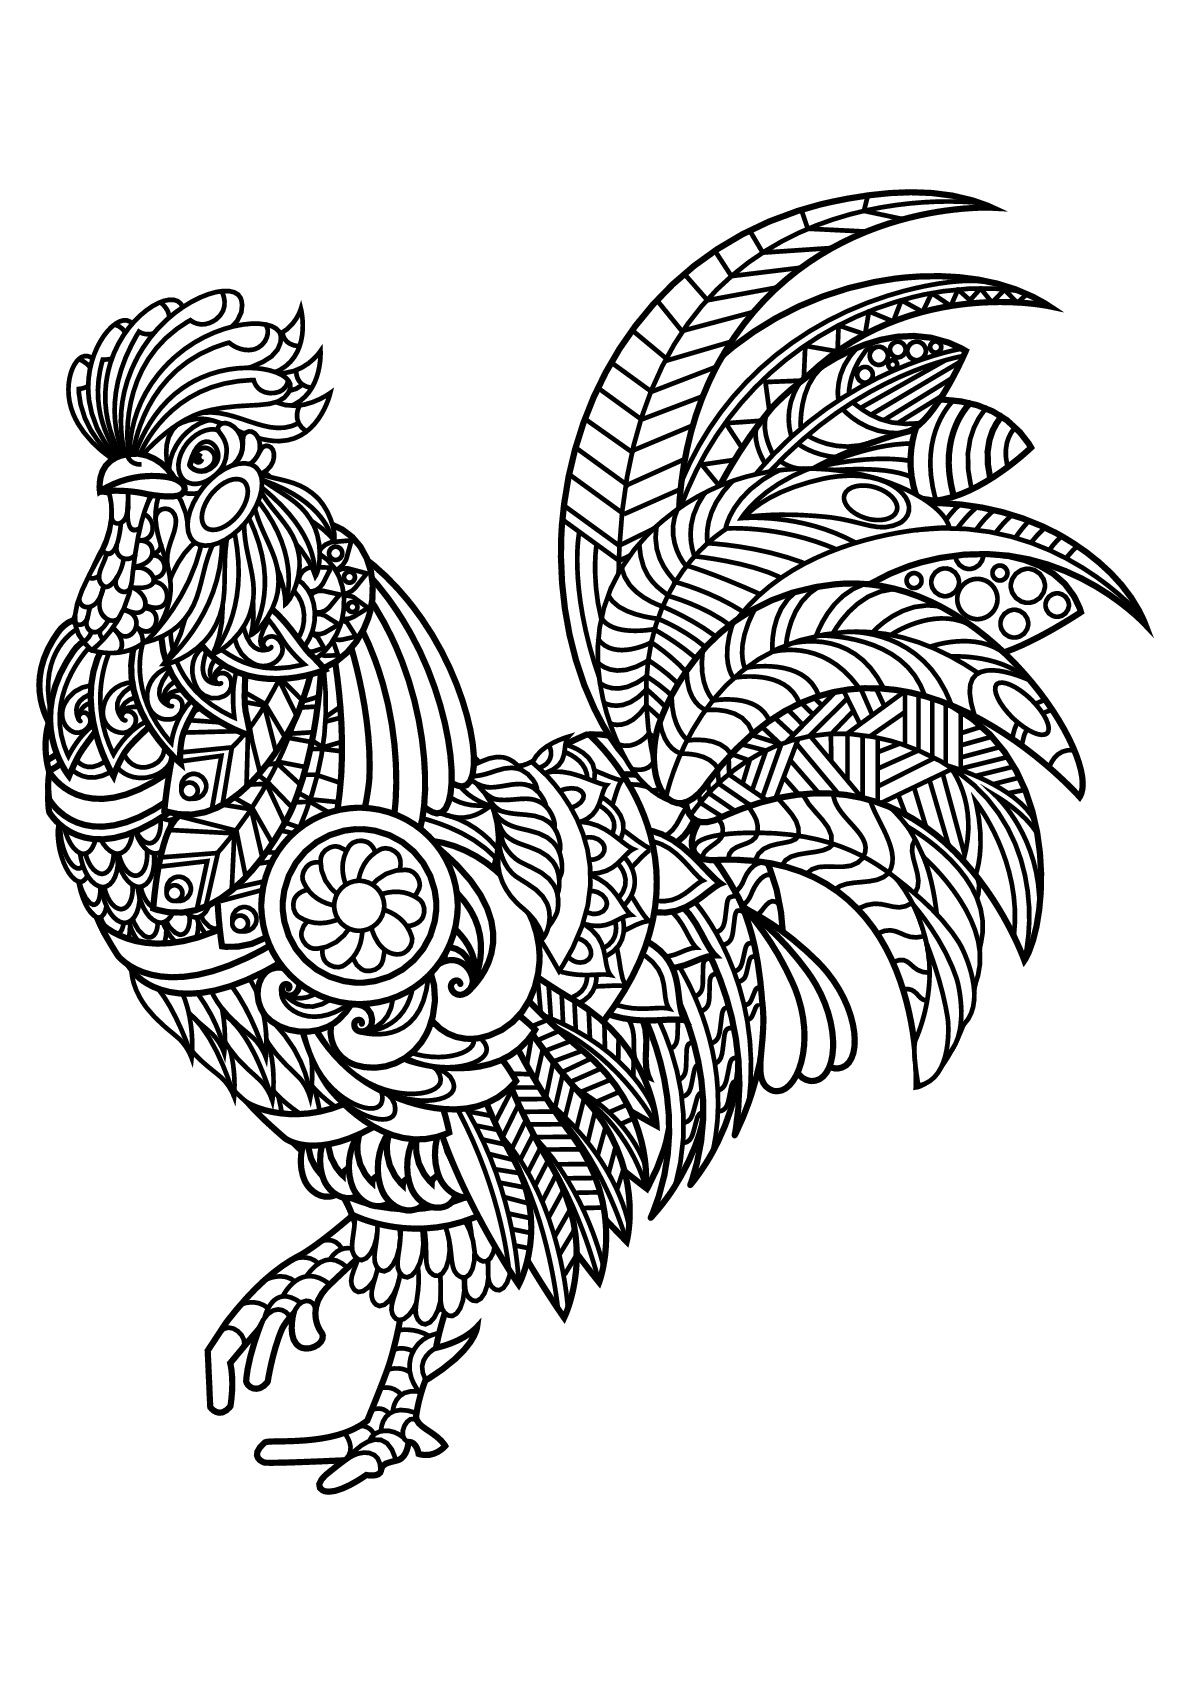 25 Brilliant Photo Of Rooster Coloring Page Albanysinsanity Com Chicken Coloring Pages Horse Coloring Pages Bird Coloring Pages